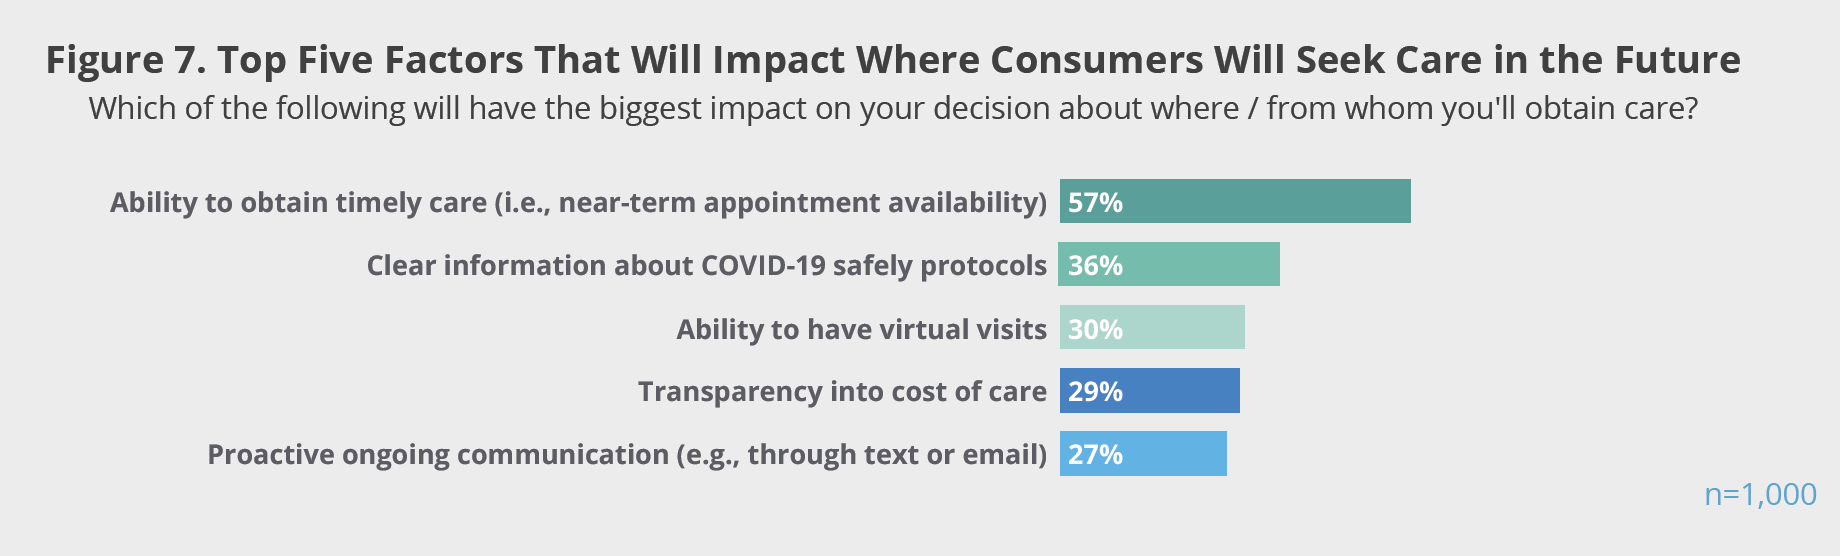 Figure 7. Top Five Factors That Will Impact Where Consumers Will Seek Care in the Future